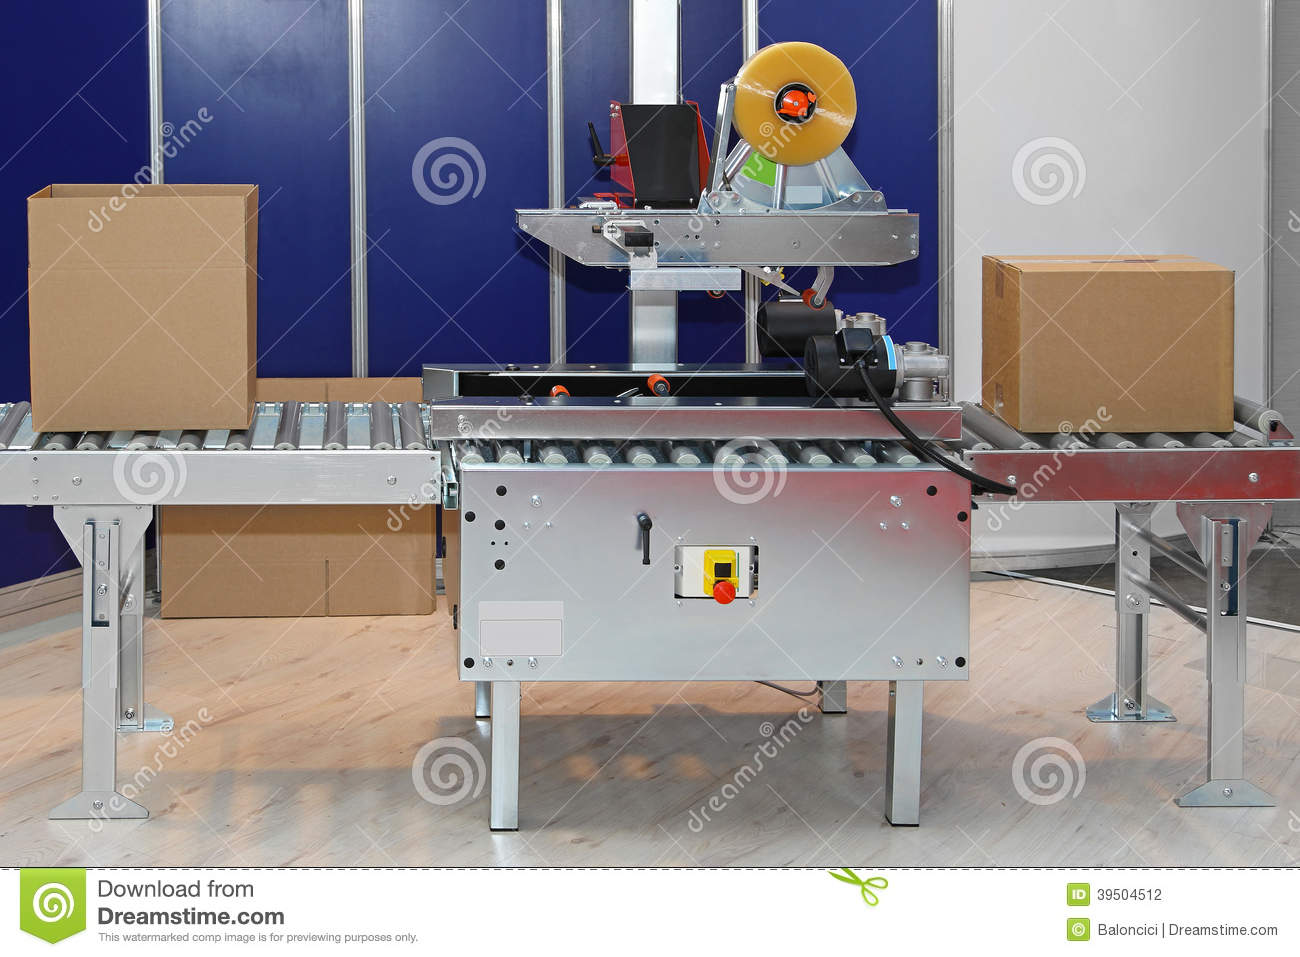 Machine packaging boxes